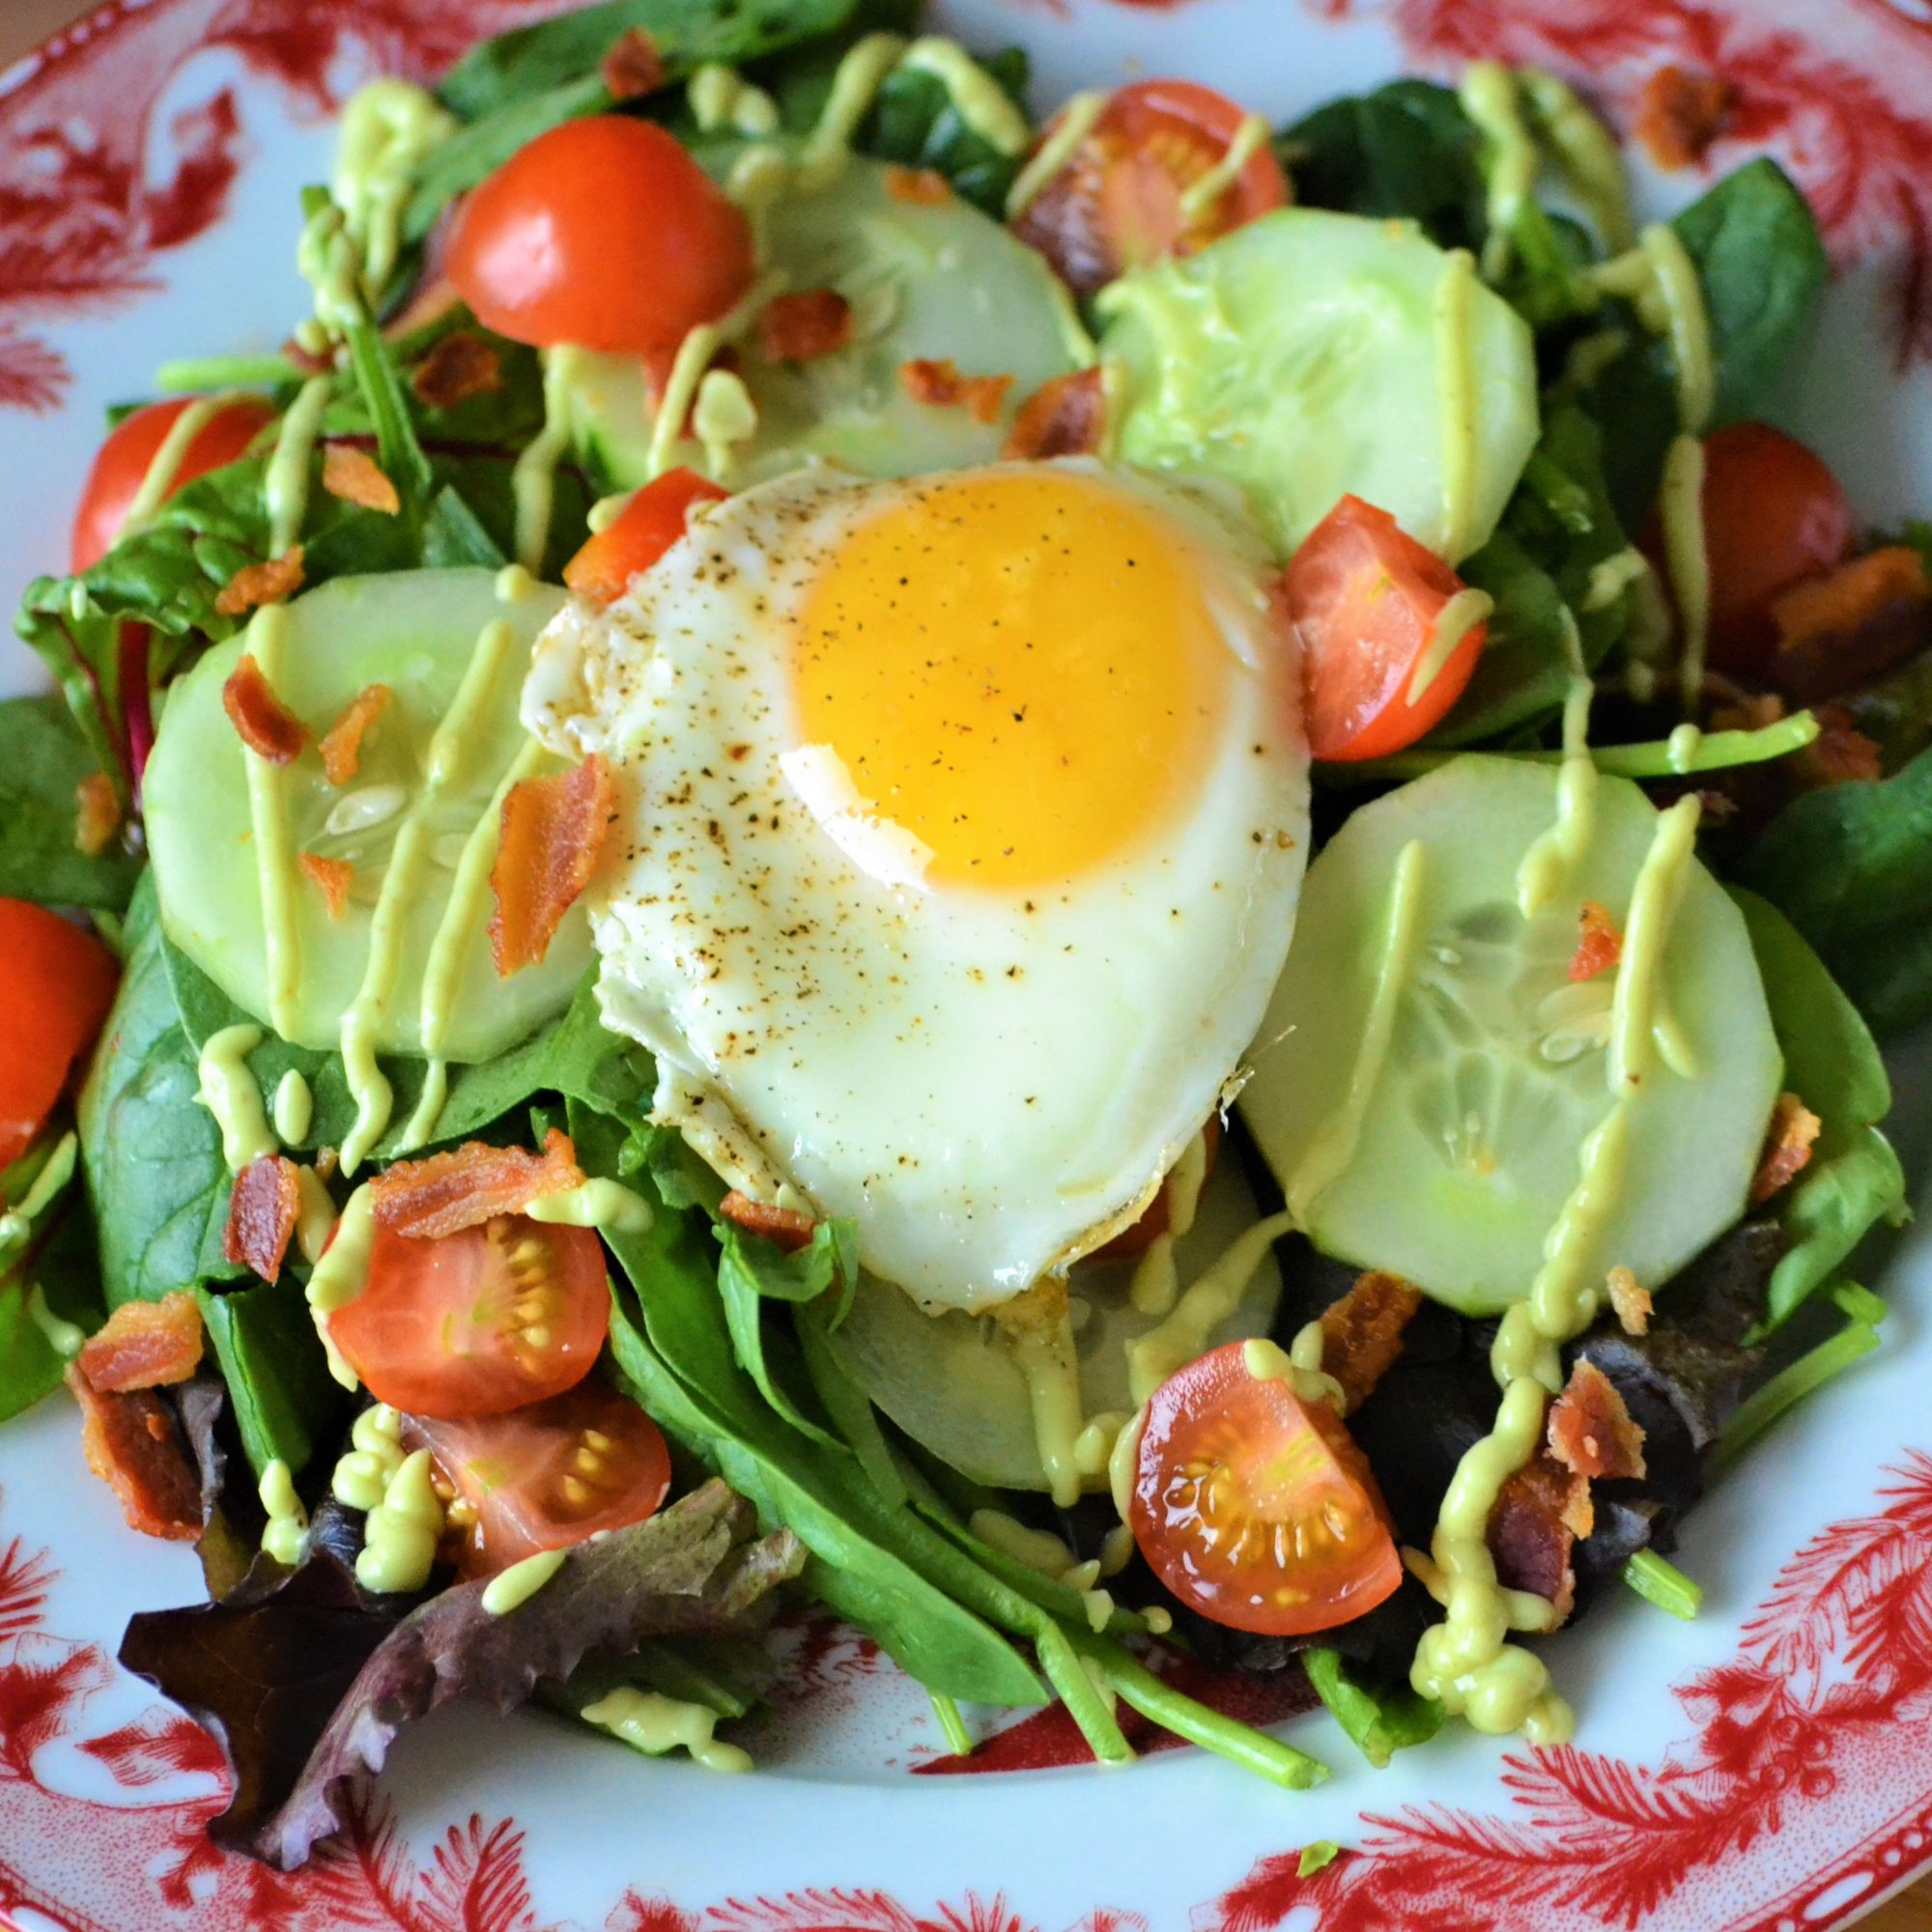 Bacon and Egg Breakfast Salad with Avocado Dressing